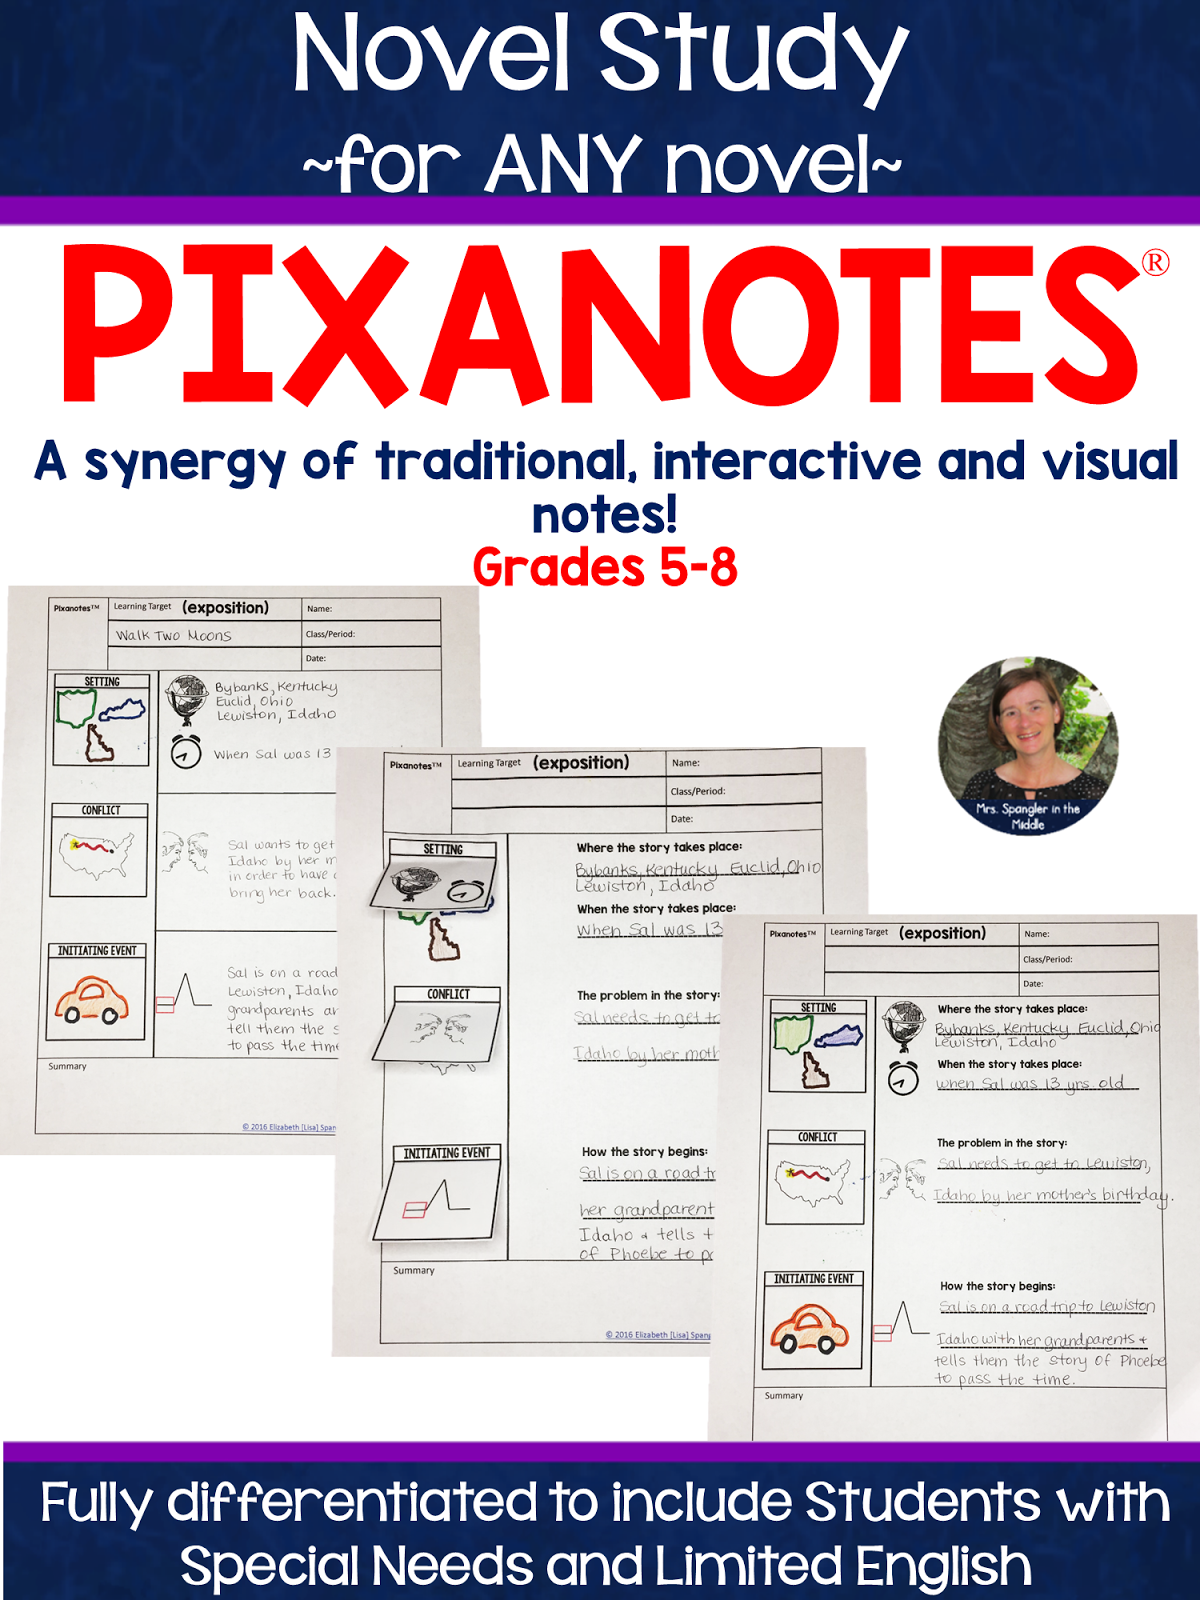 Get Free Pixanotes & Insider Access By Subscribing to My Newsletter! {click below}